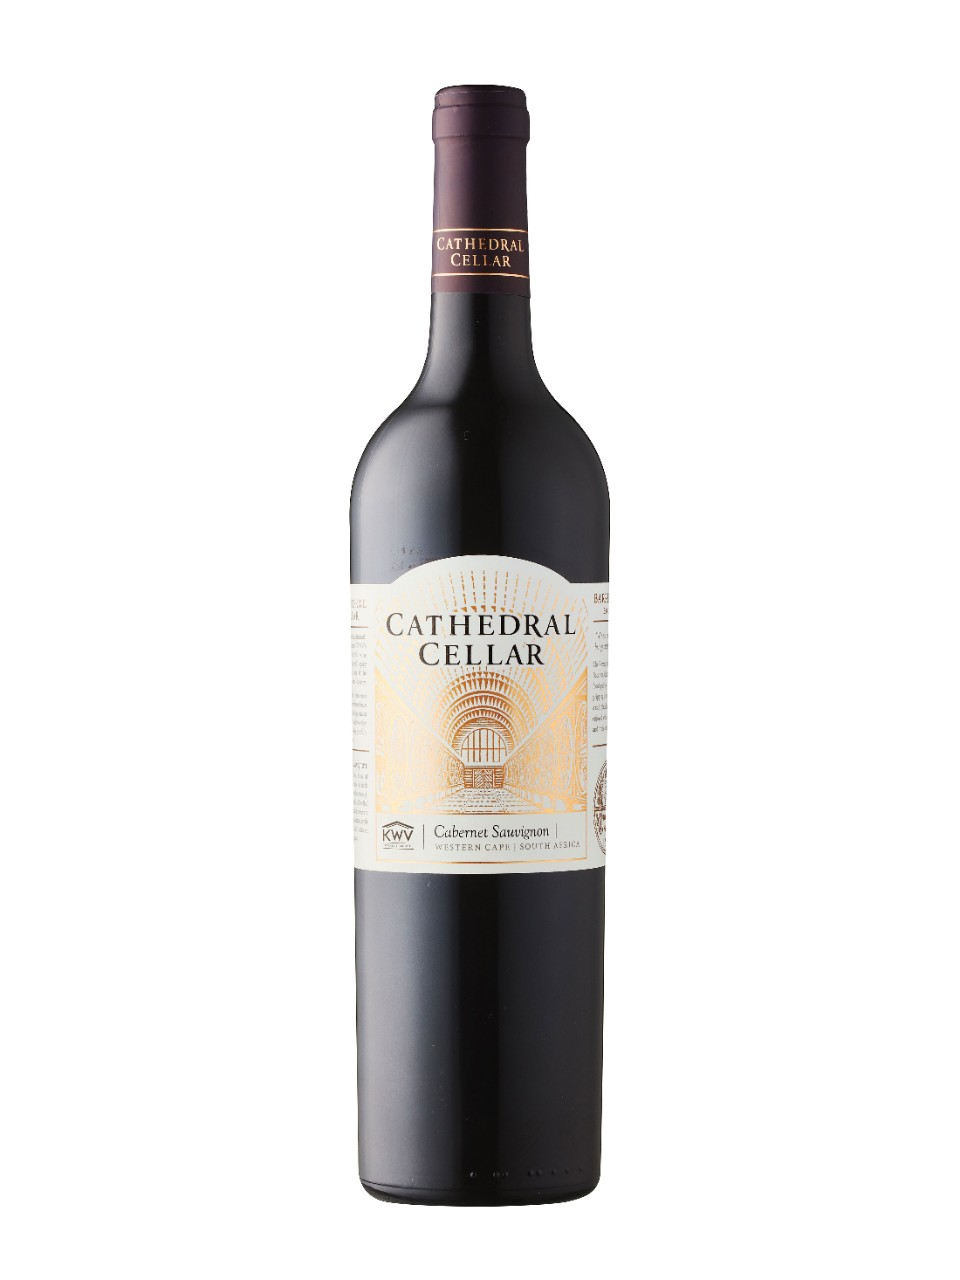 Cathedral Cellar Cabernet Sauvignon